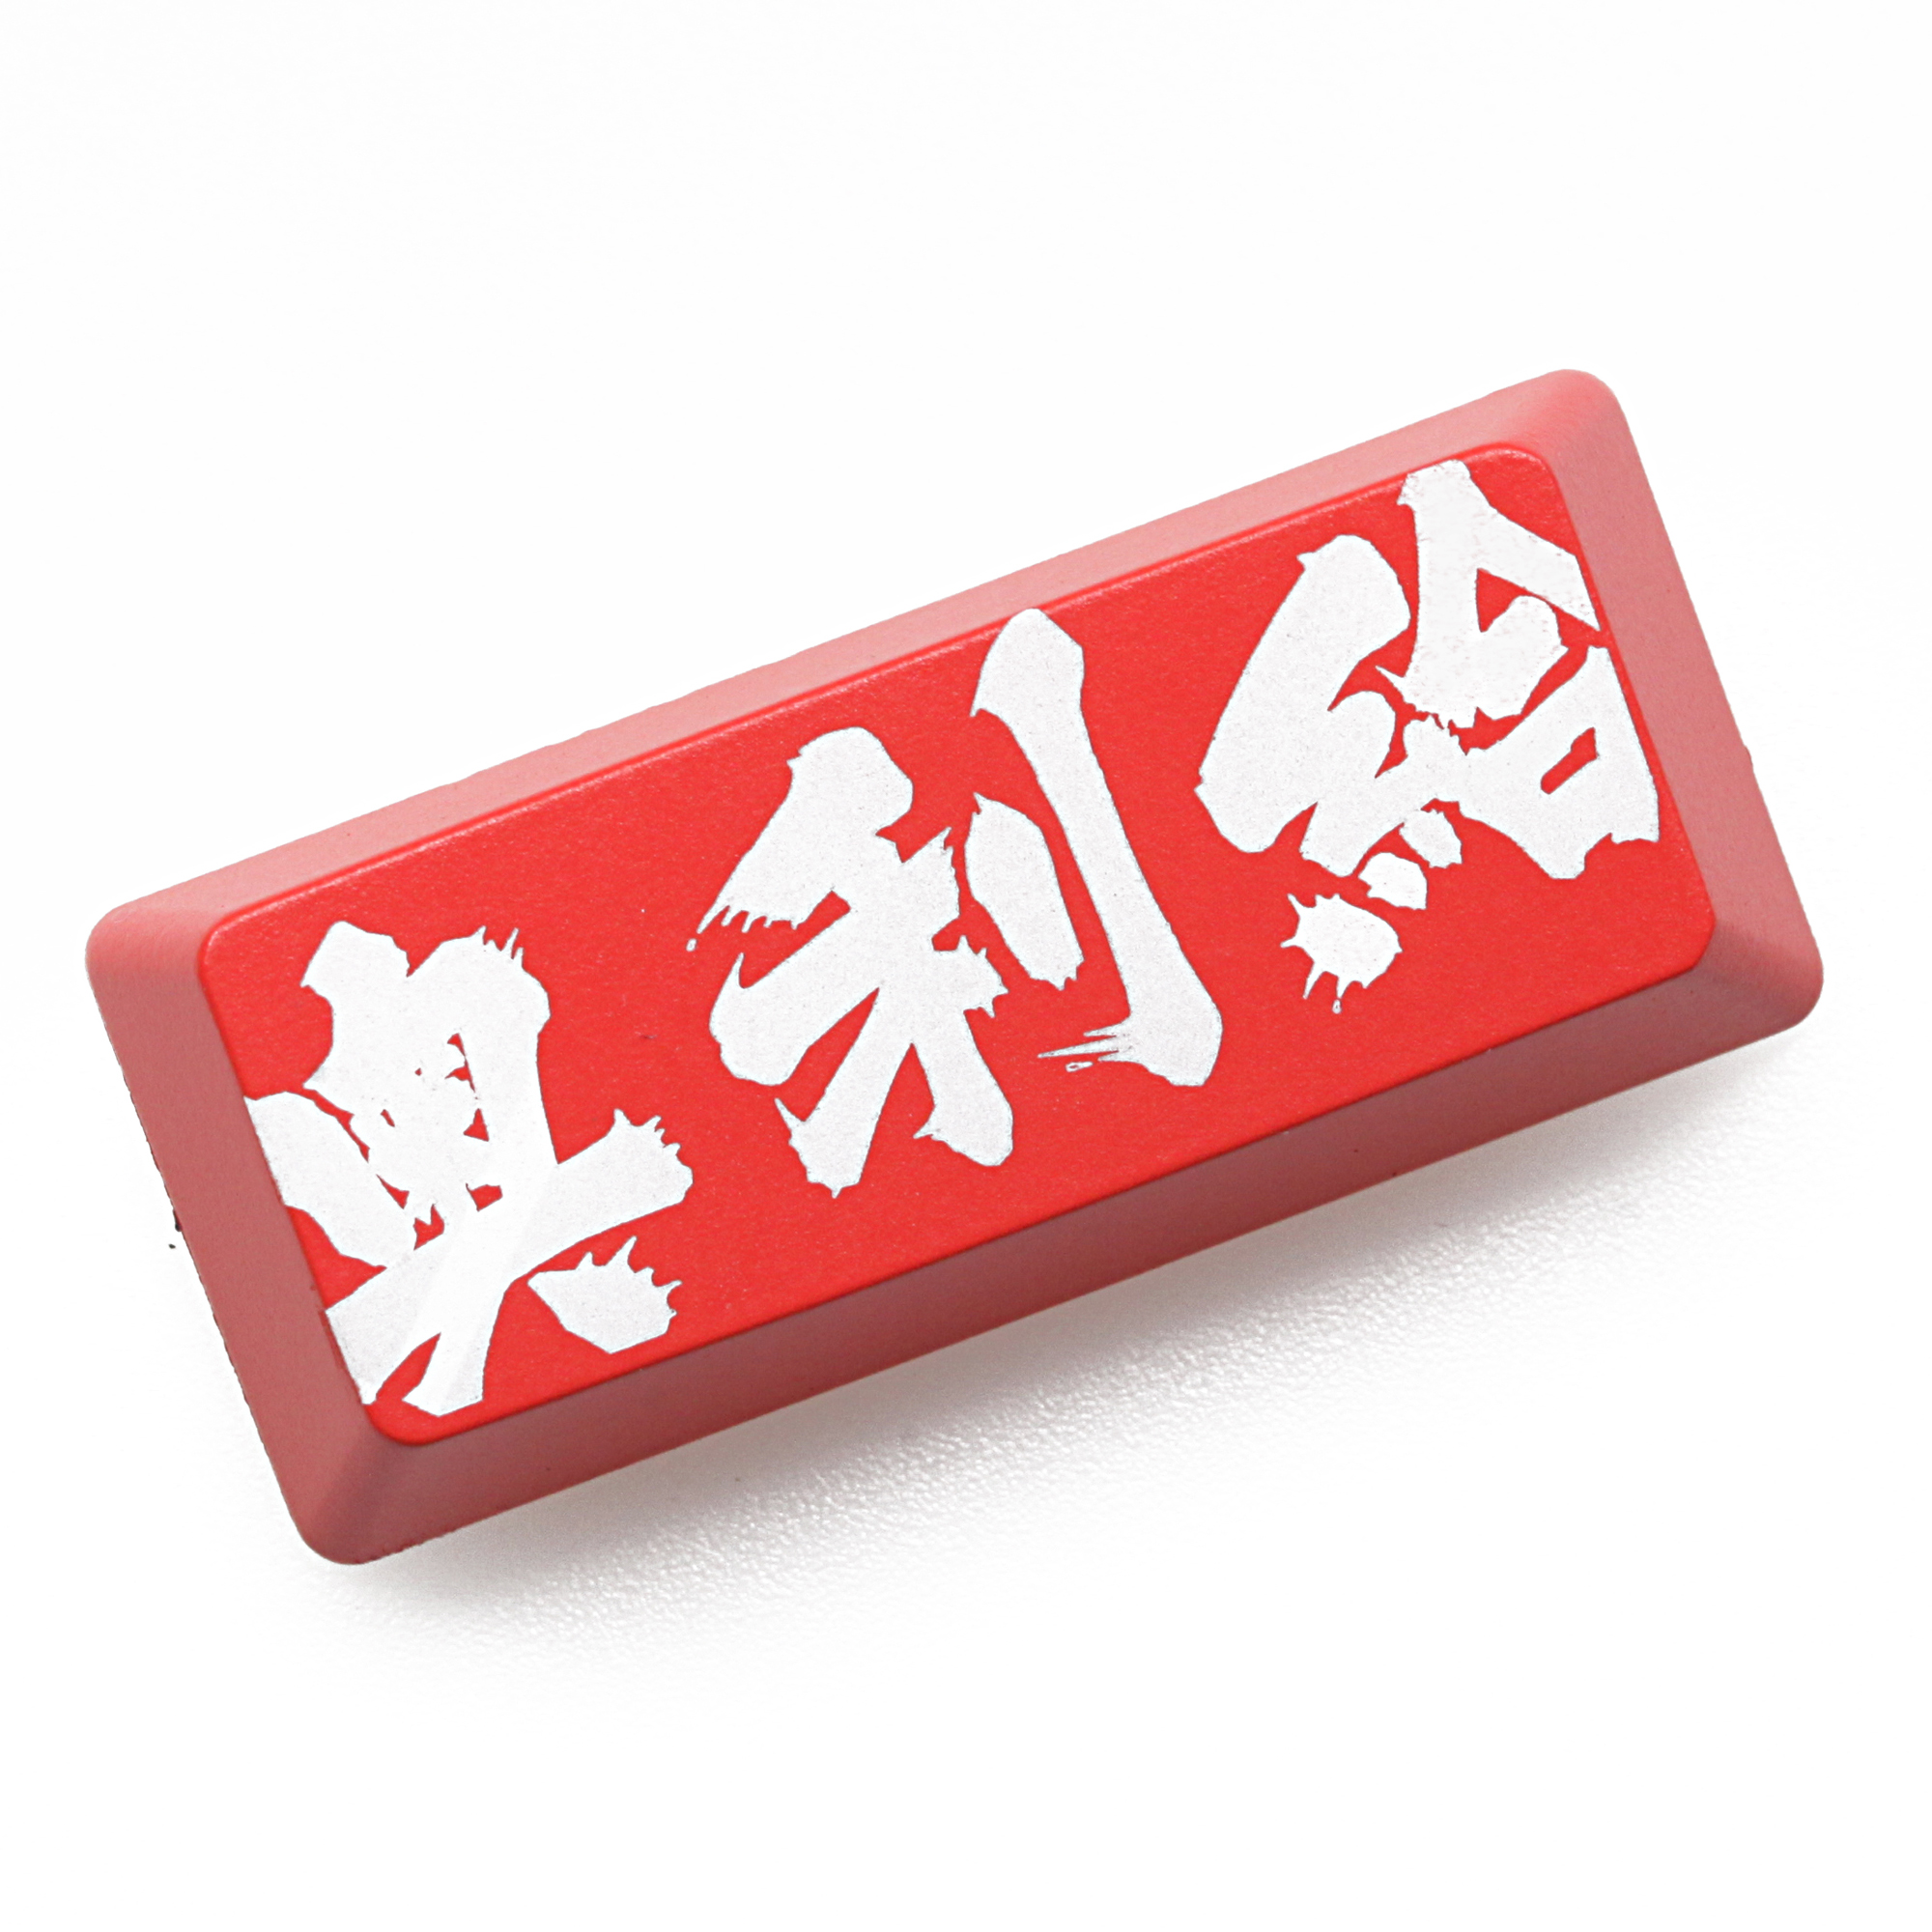 Novelty Shine Through Keycap ABS Etched Shine-Through Aoligei Awesome Come On Chinese Black Red Enter Backspace For Keyboard